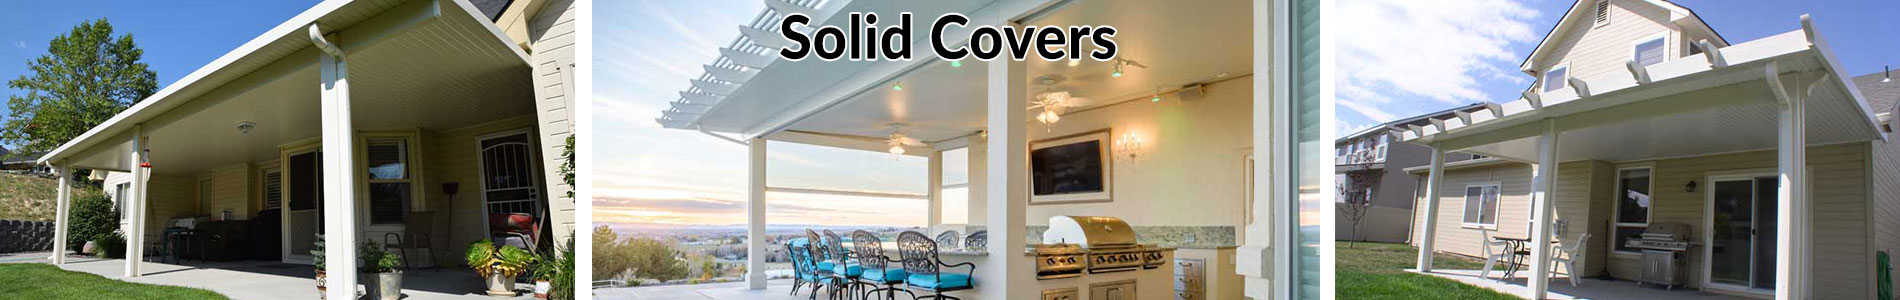 SolidCovers